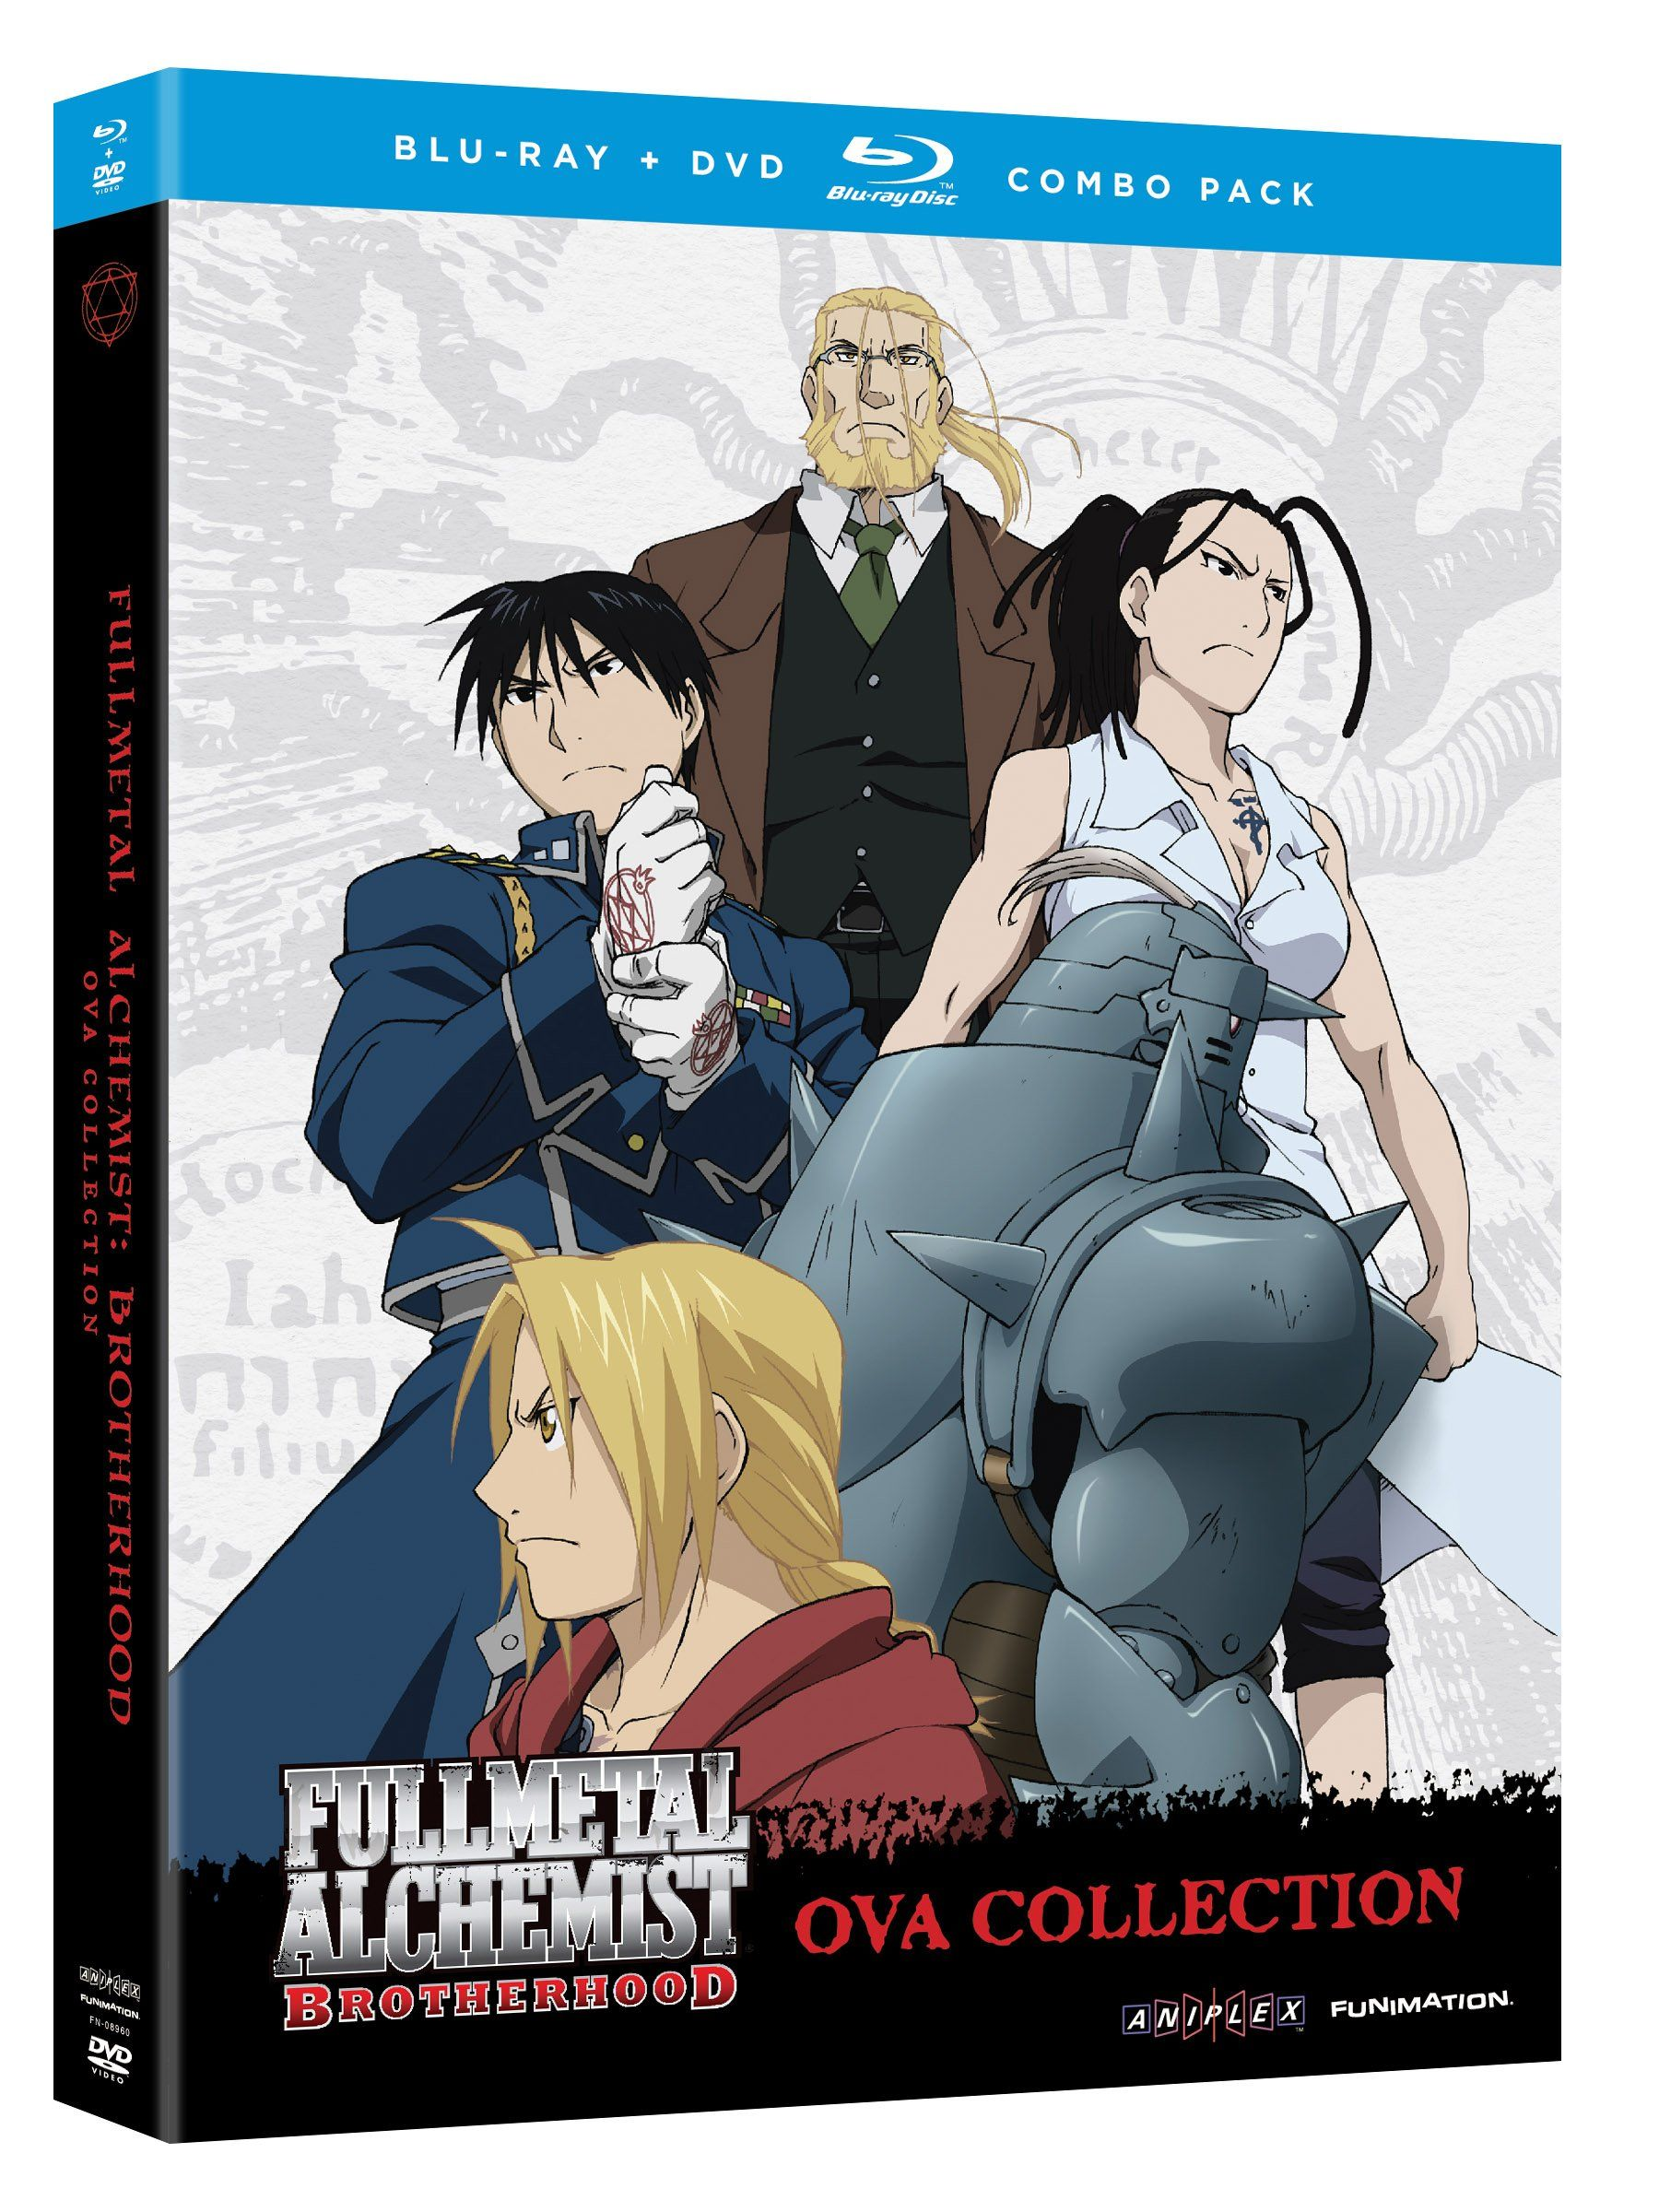 Fullmetal Alchemist Brotherhood Ova Collection USA Bluray